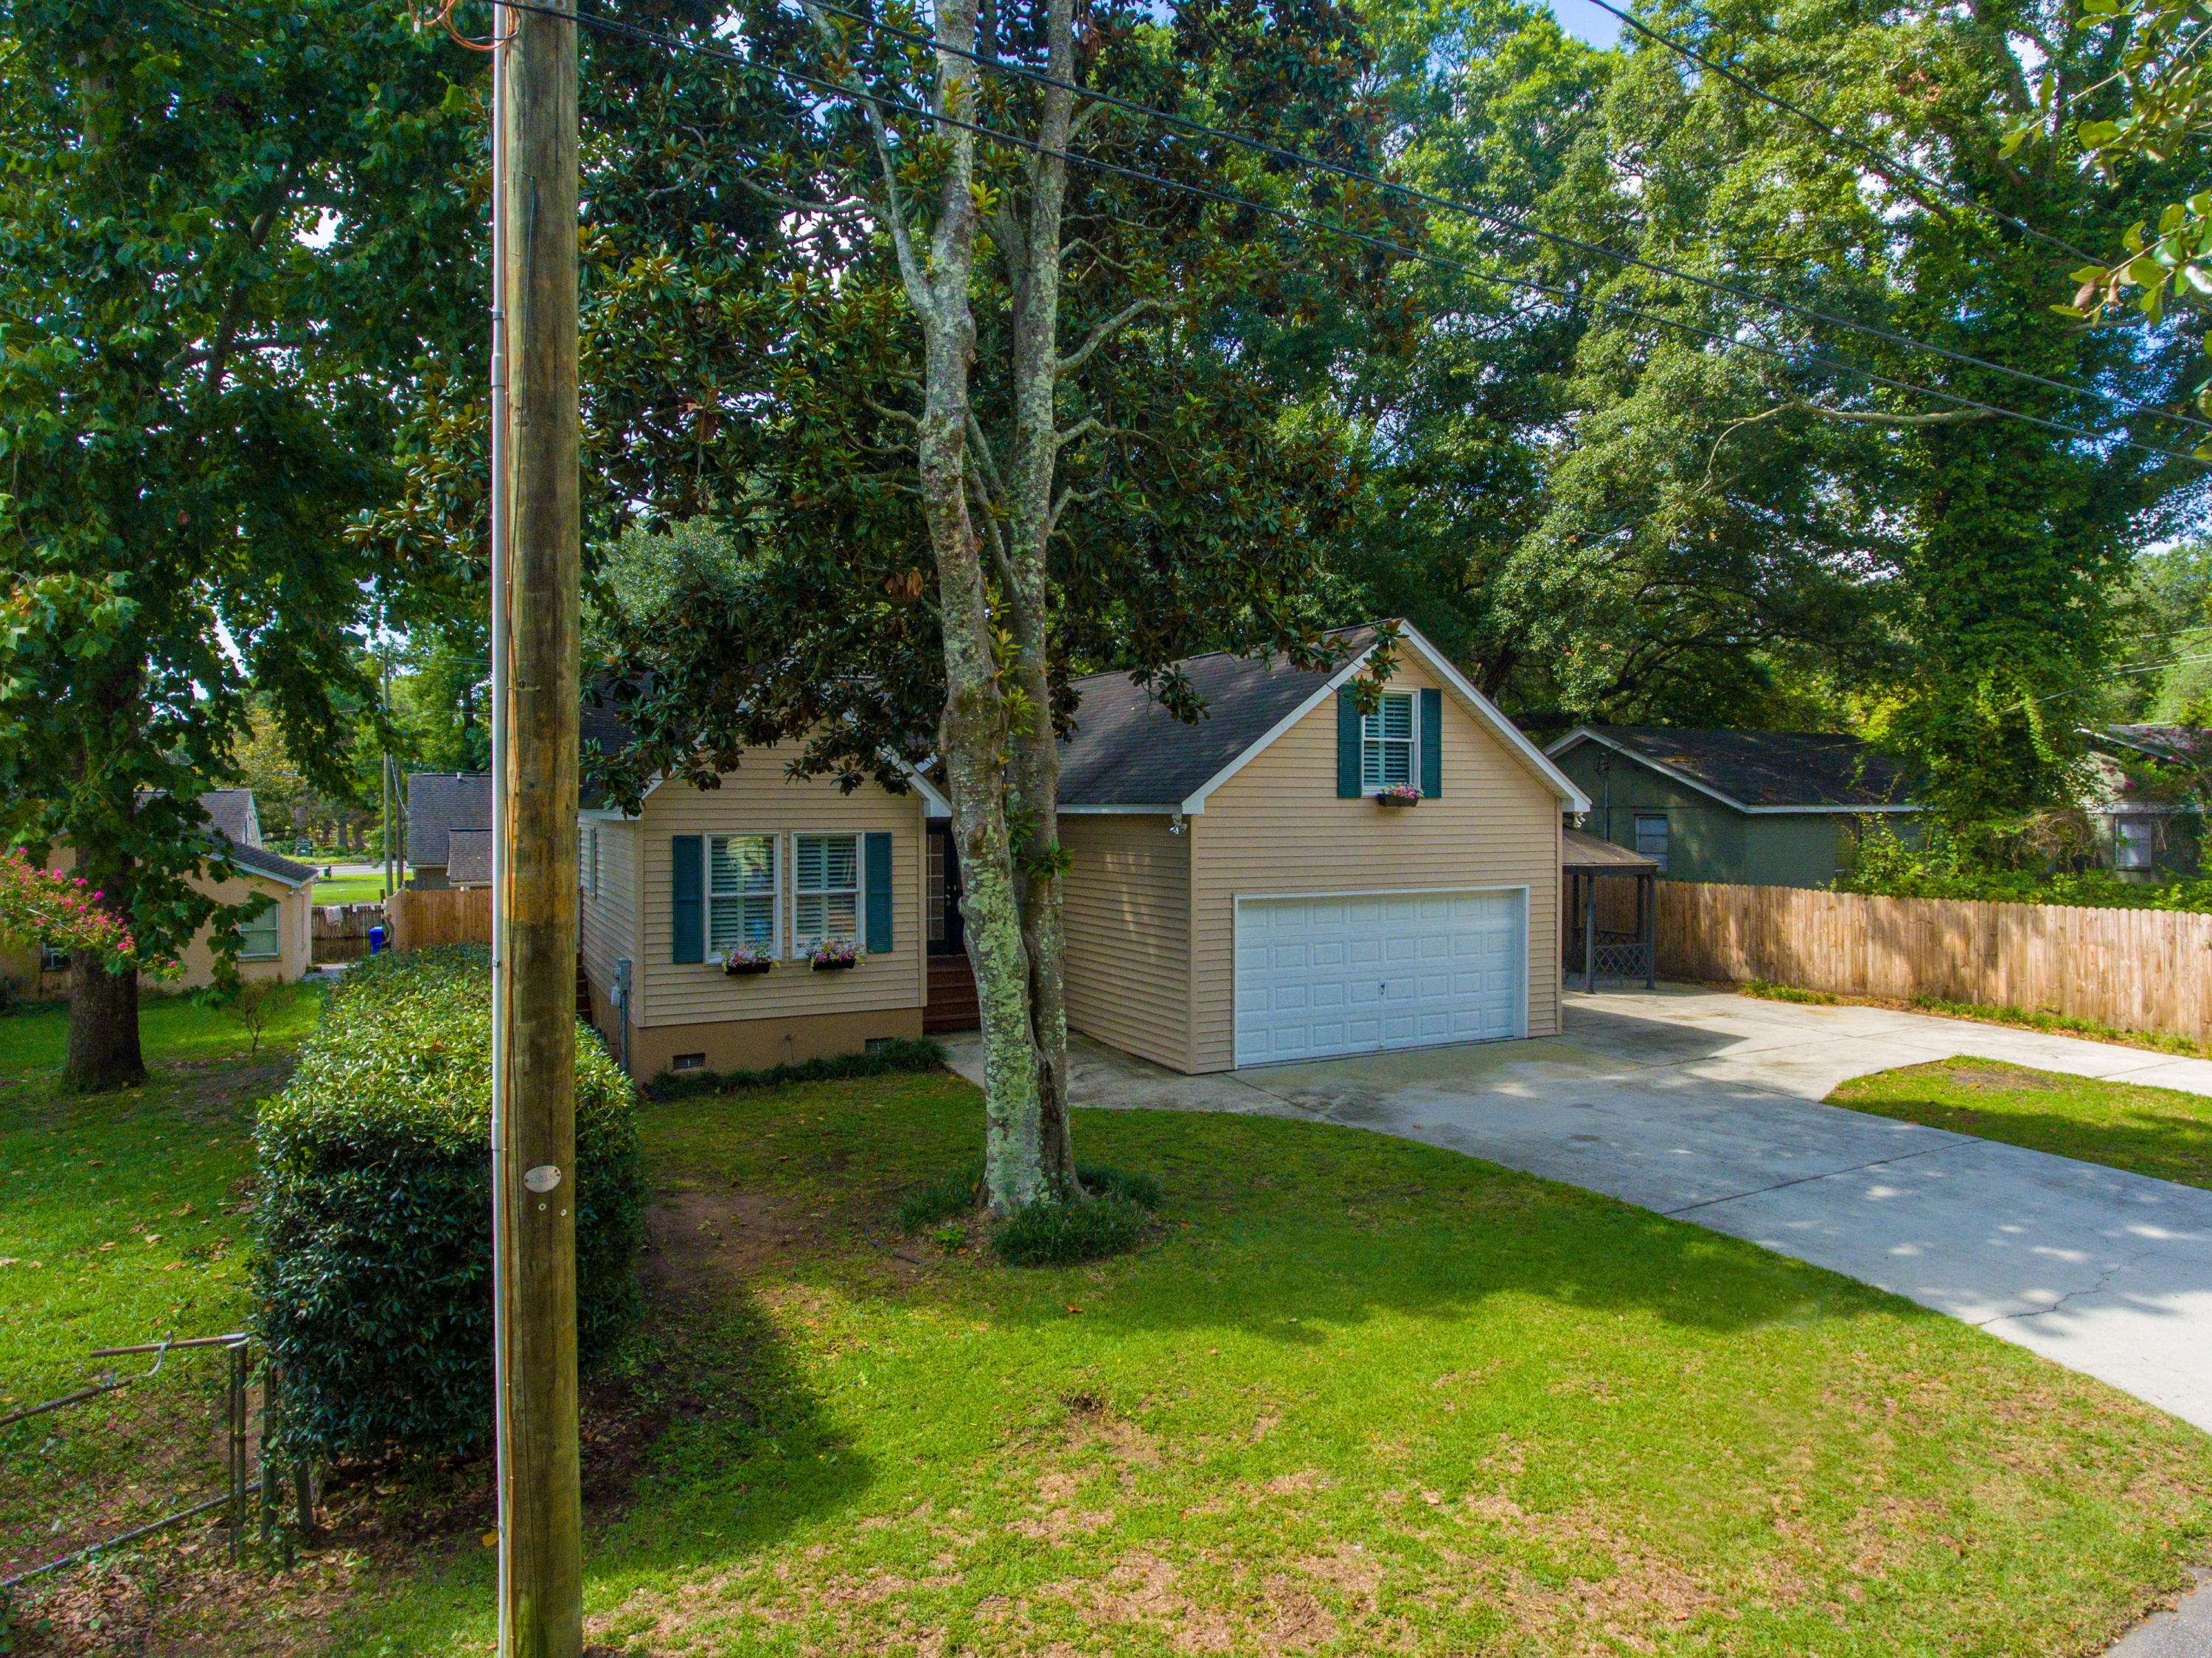 Riverland Terrace Homes For Sale - 2115 Welch, Charleston, SC - 22